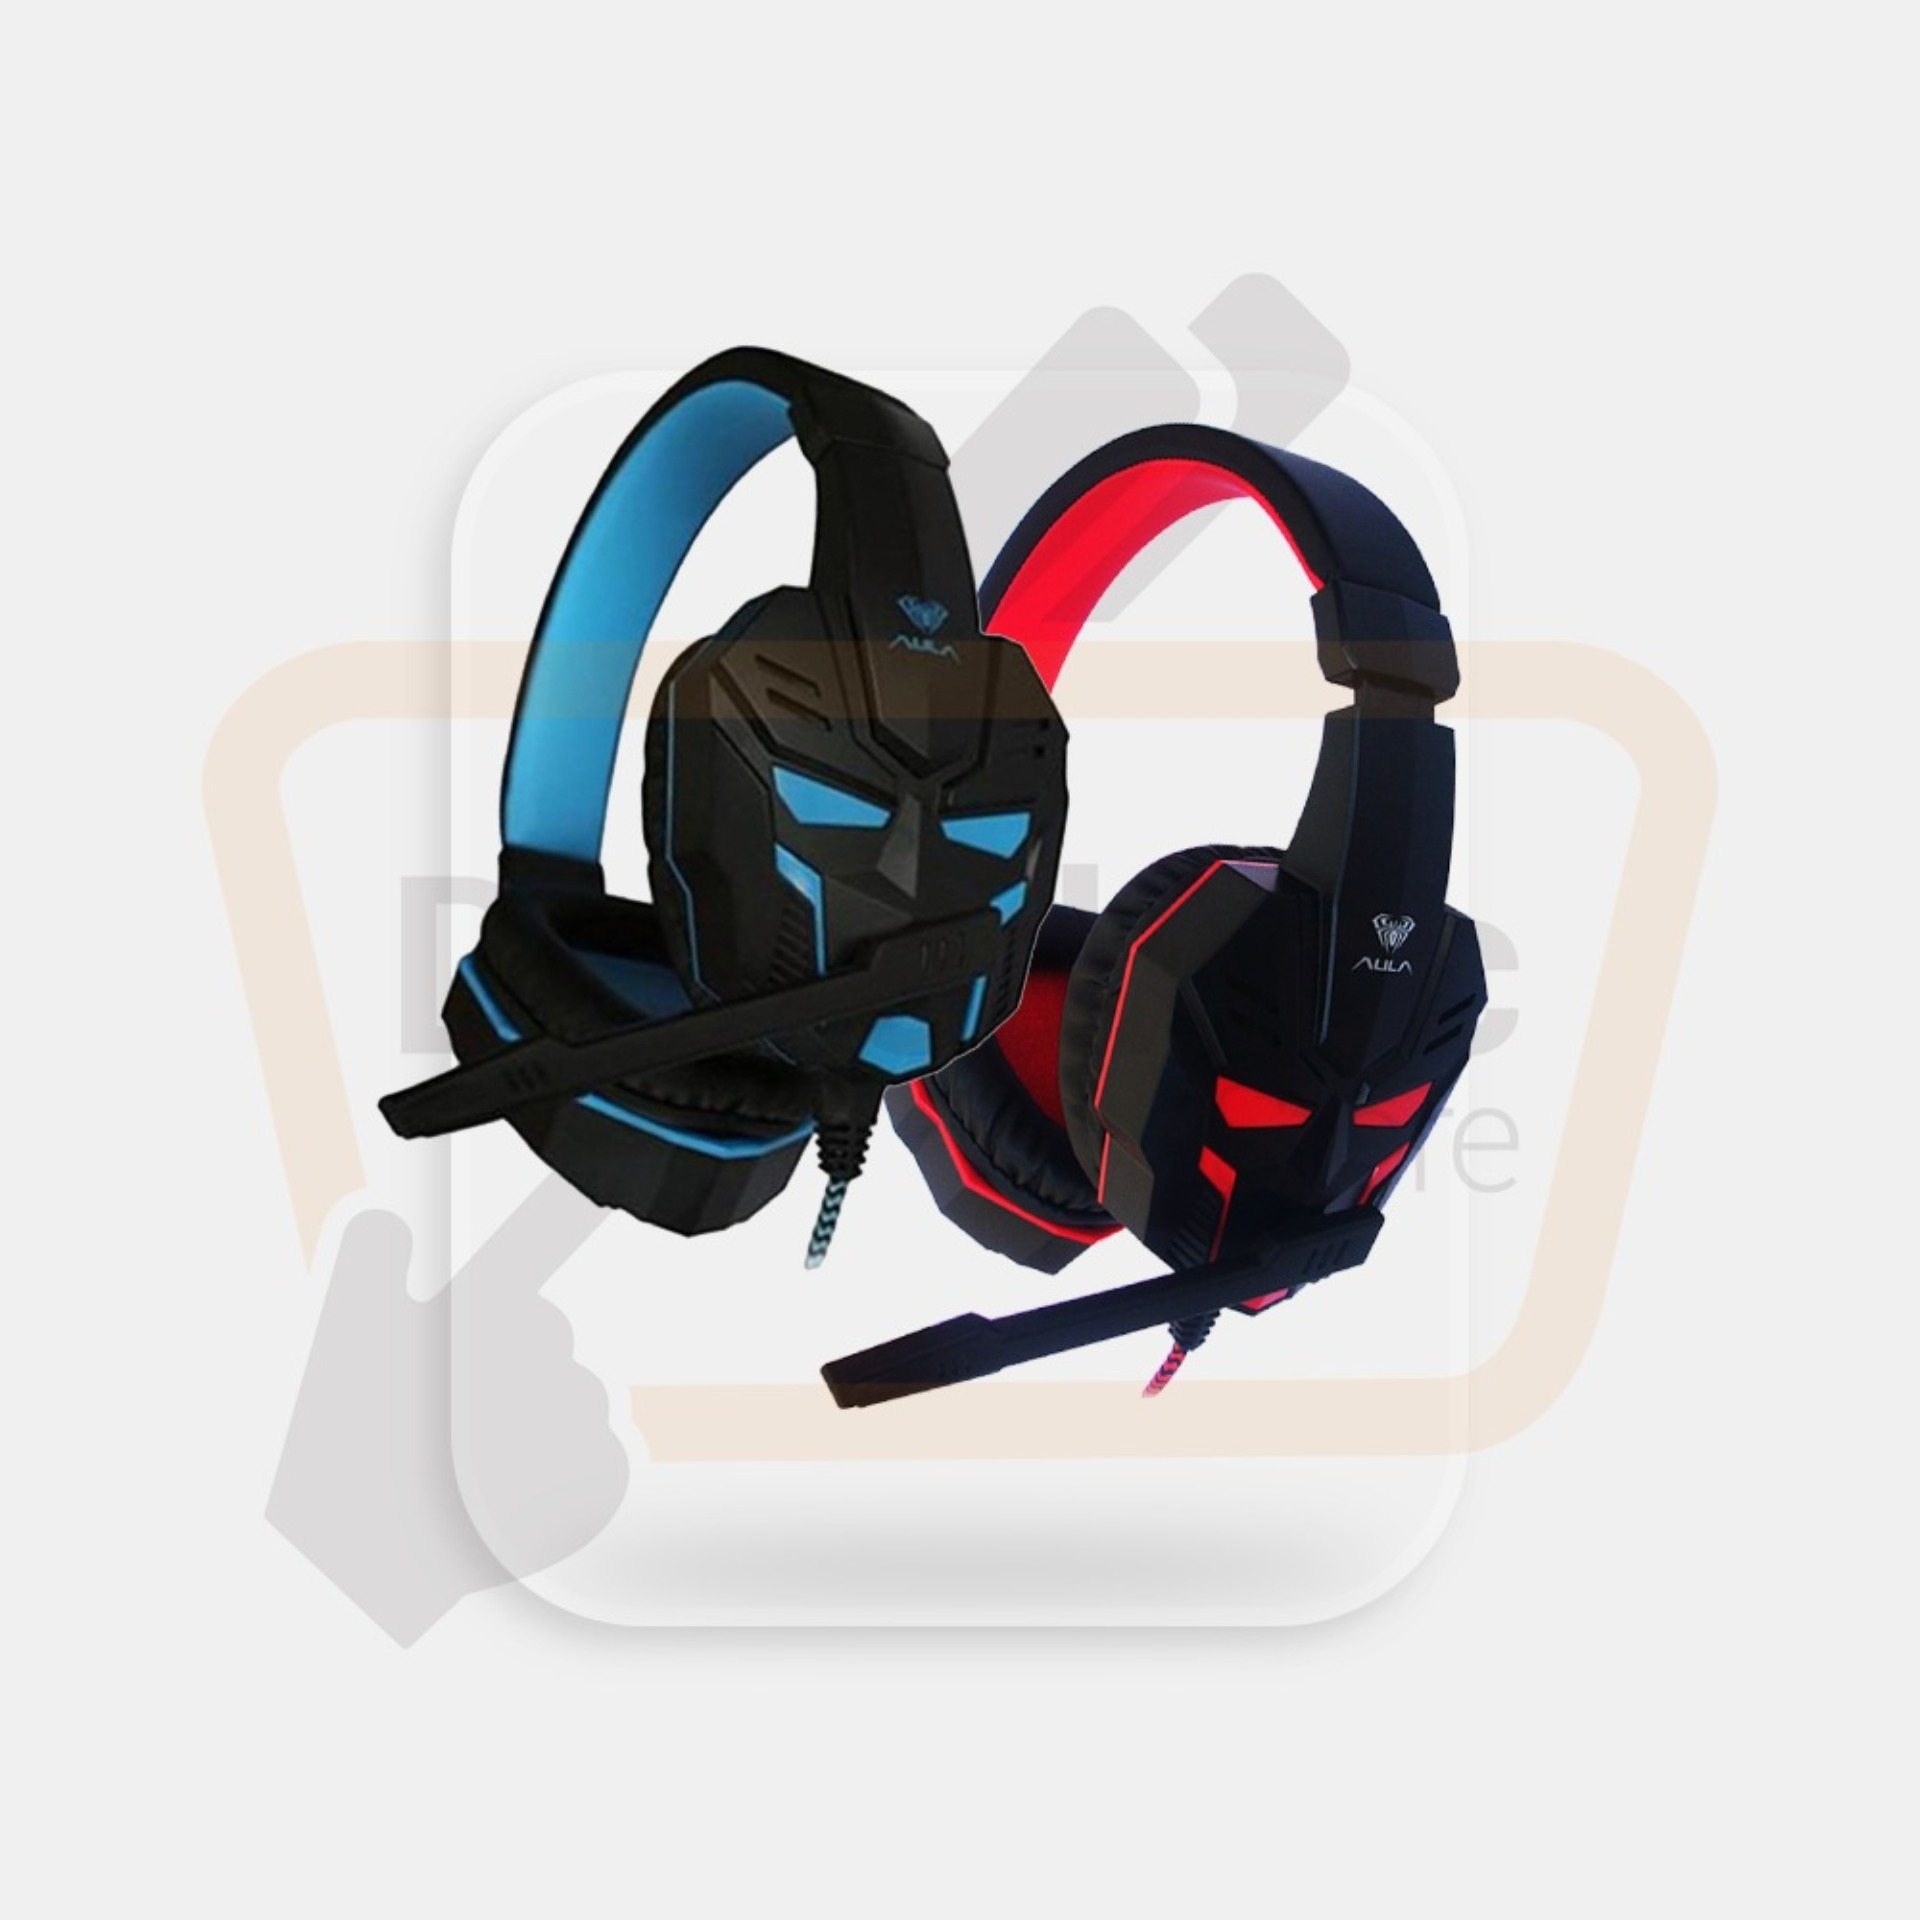 https://www.lazada.co.id/products/aula-lb01-headset-gaming-with-mic-i113550522-s446746915.html